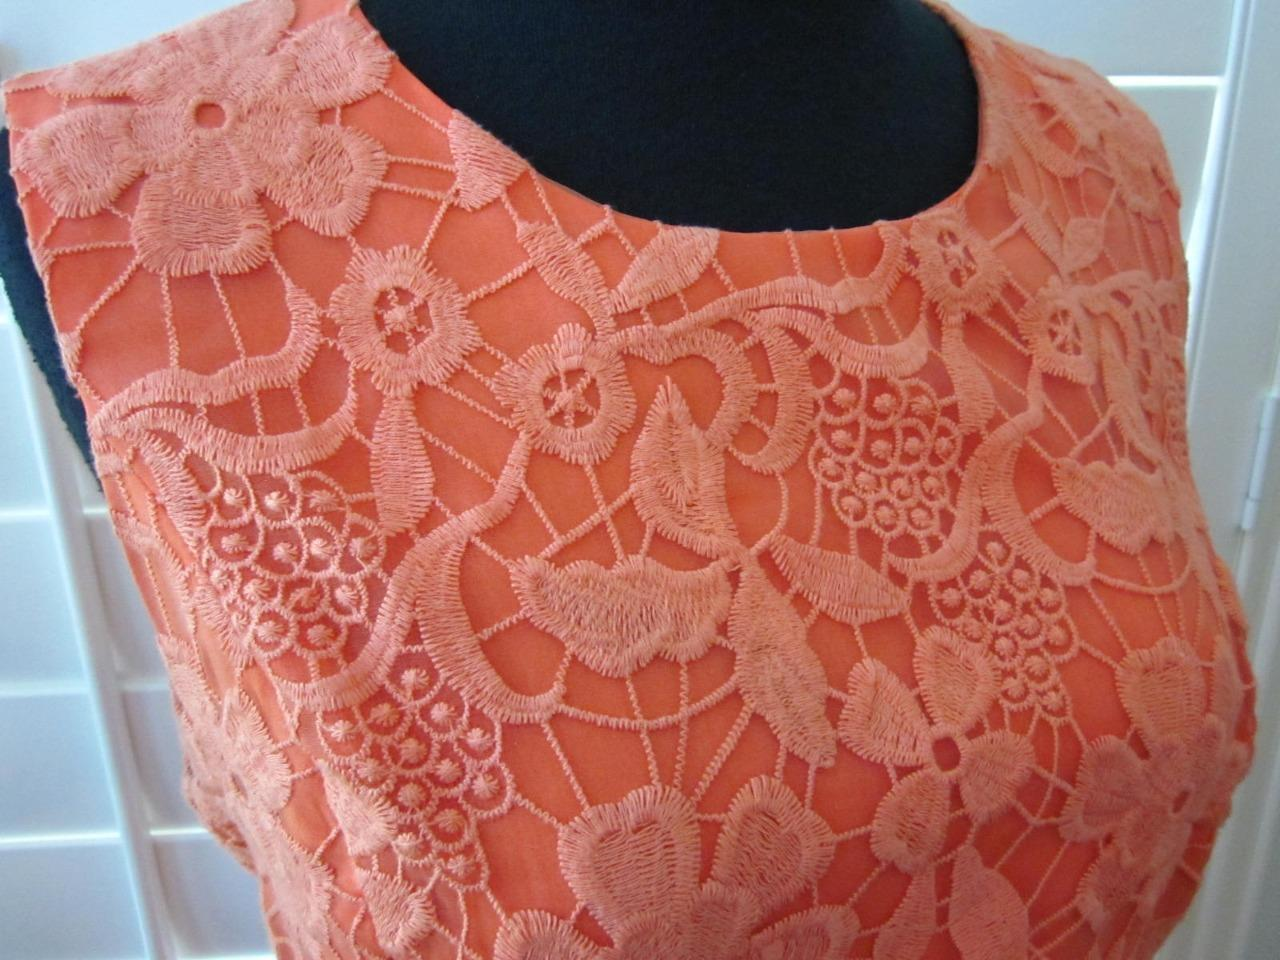 Belle Badgley Mischka CORAL Floral Lace Overlay Sheath Dress Sz 8 US 40 EU 12 UK